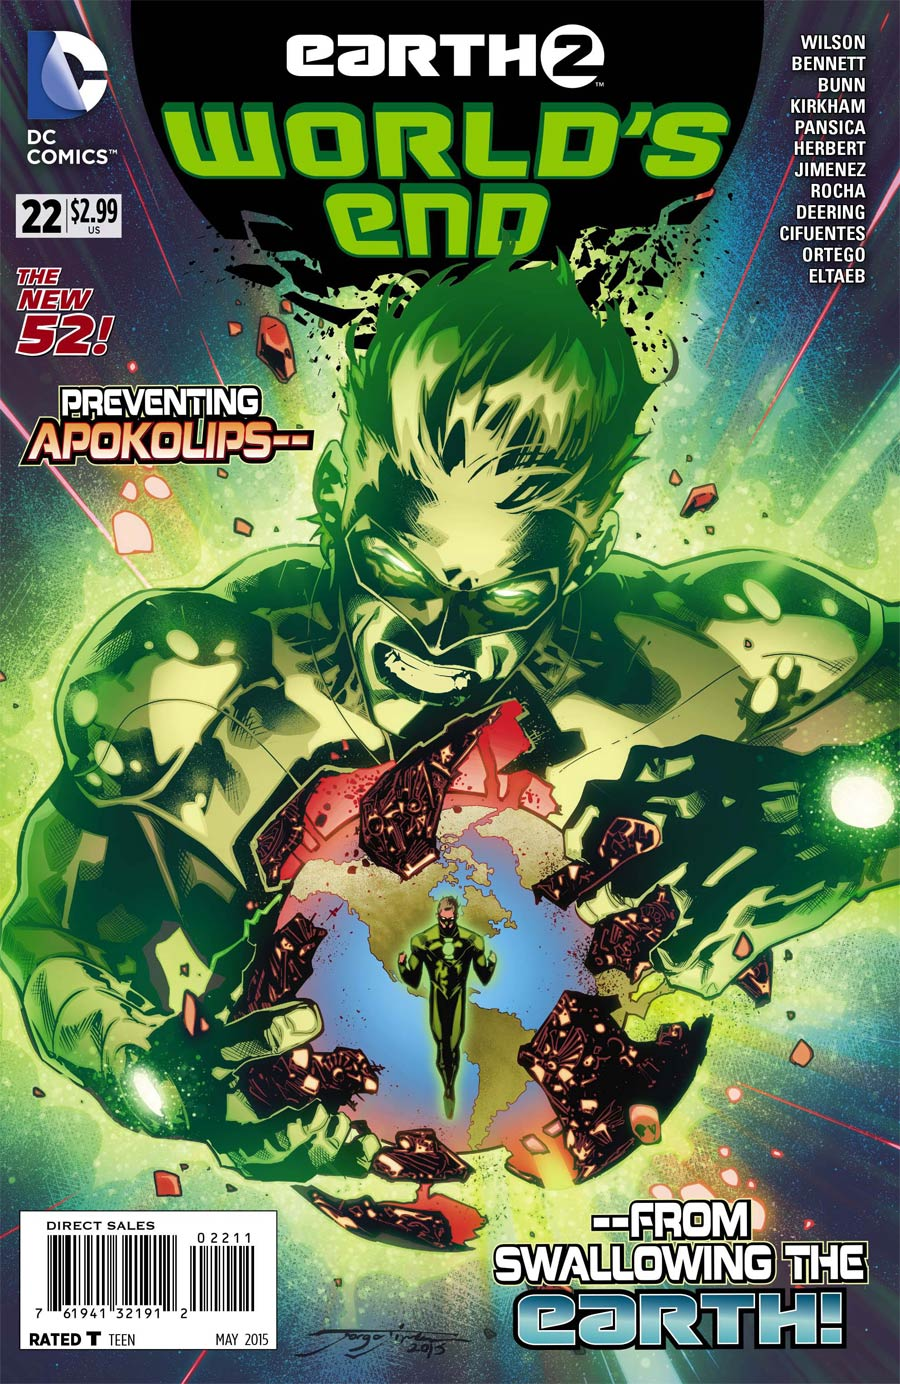 Earth 2 Worlds End #22